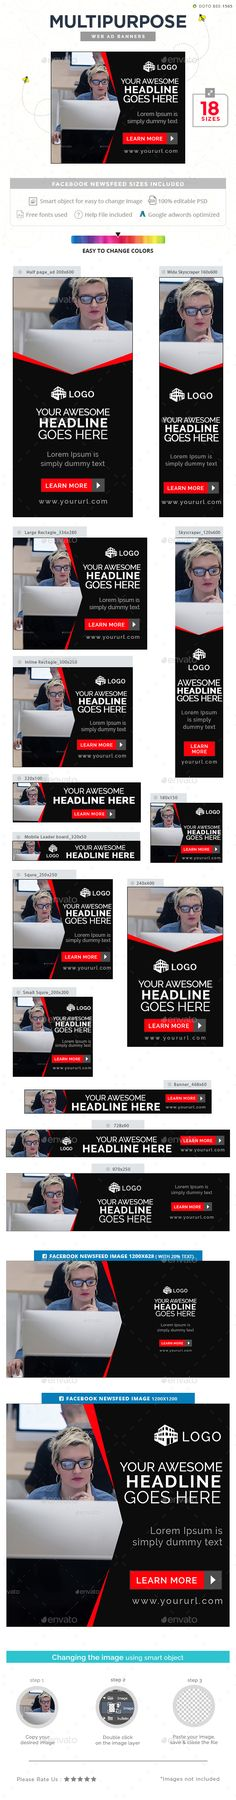 Business Banners Banner Adwords Pinterest Business and Banners - coupon template download